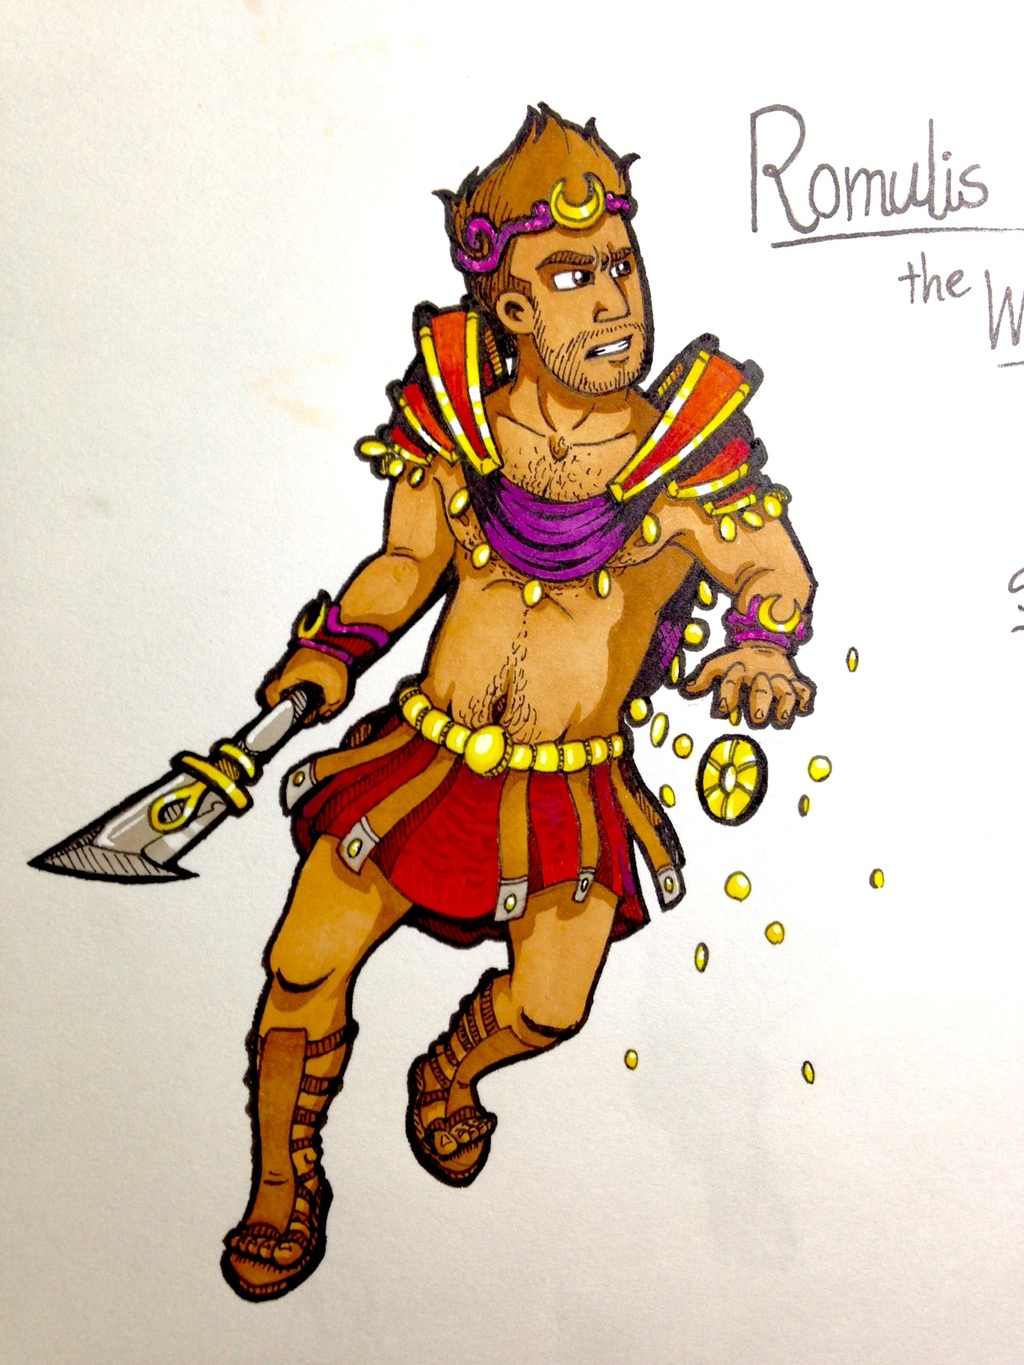 Most recent image: Redo - Romulis the Wealth mage